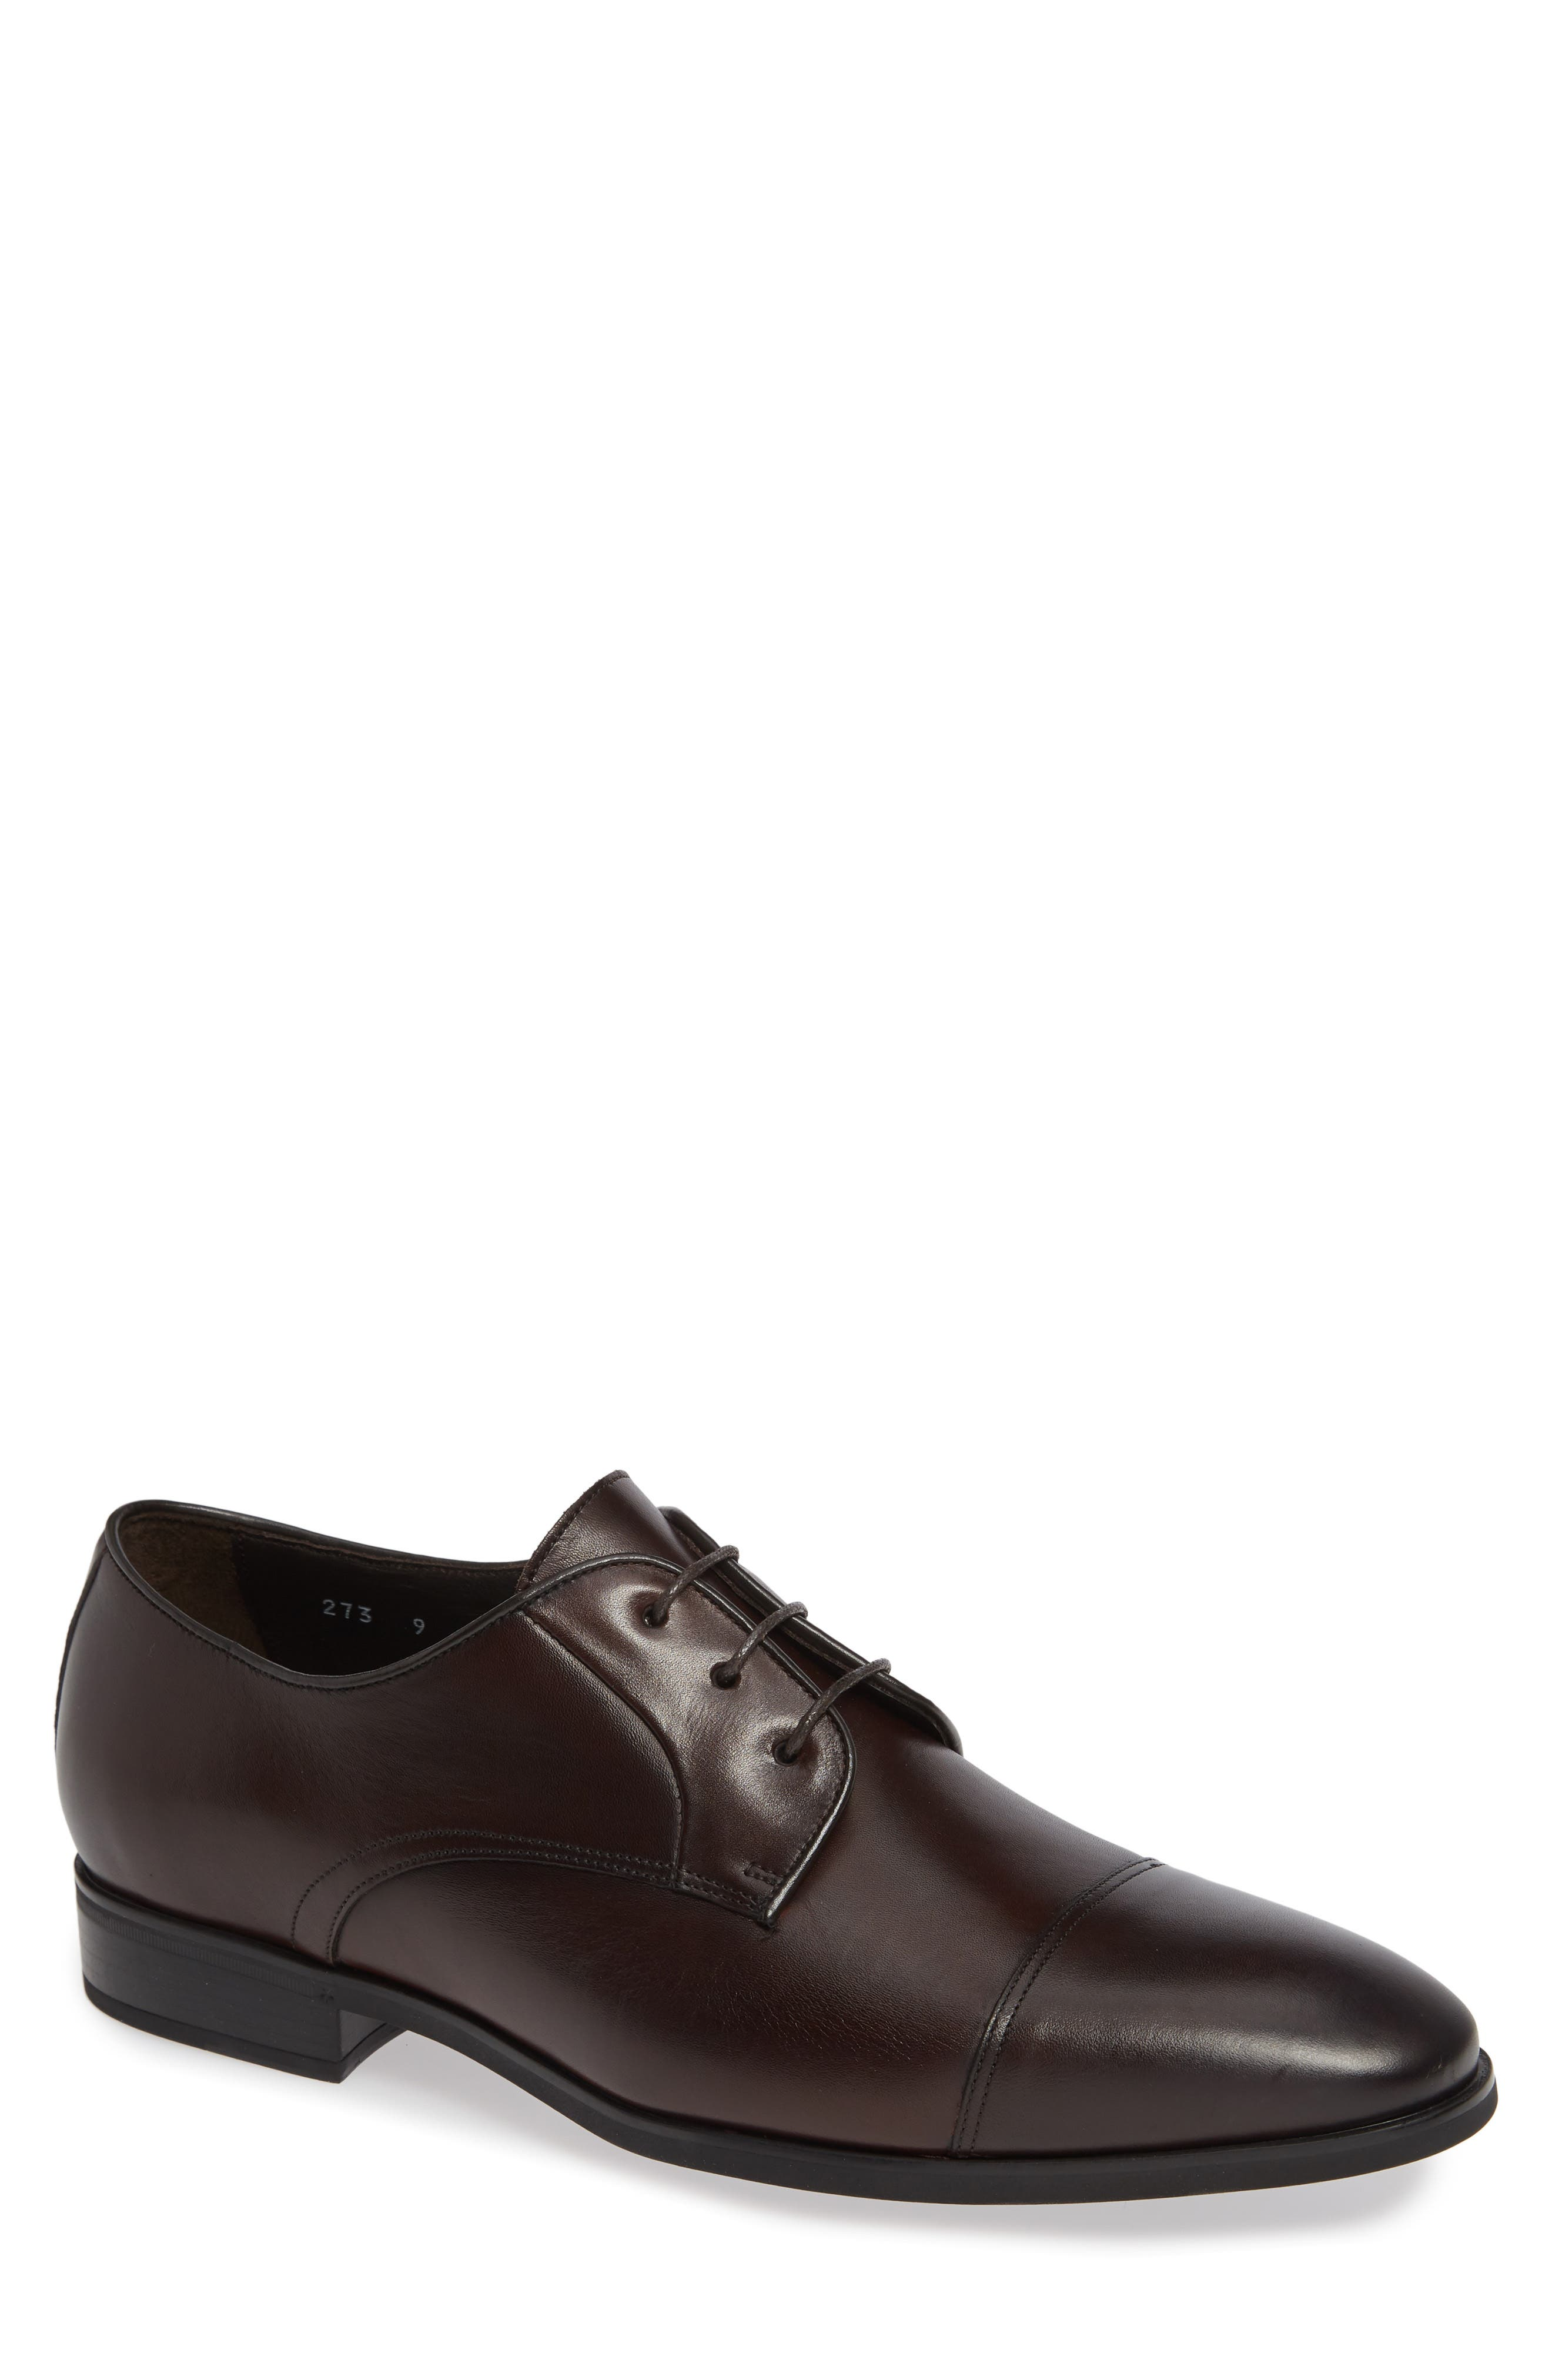 Aberdeen Cap Toe Derby,                         Main,                         color, BERRY/ TMORO LEATHER